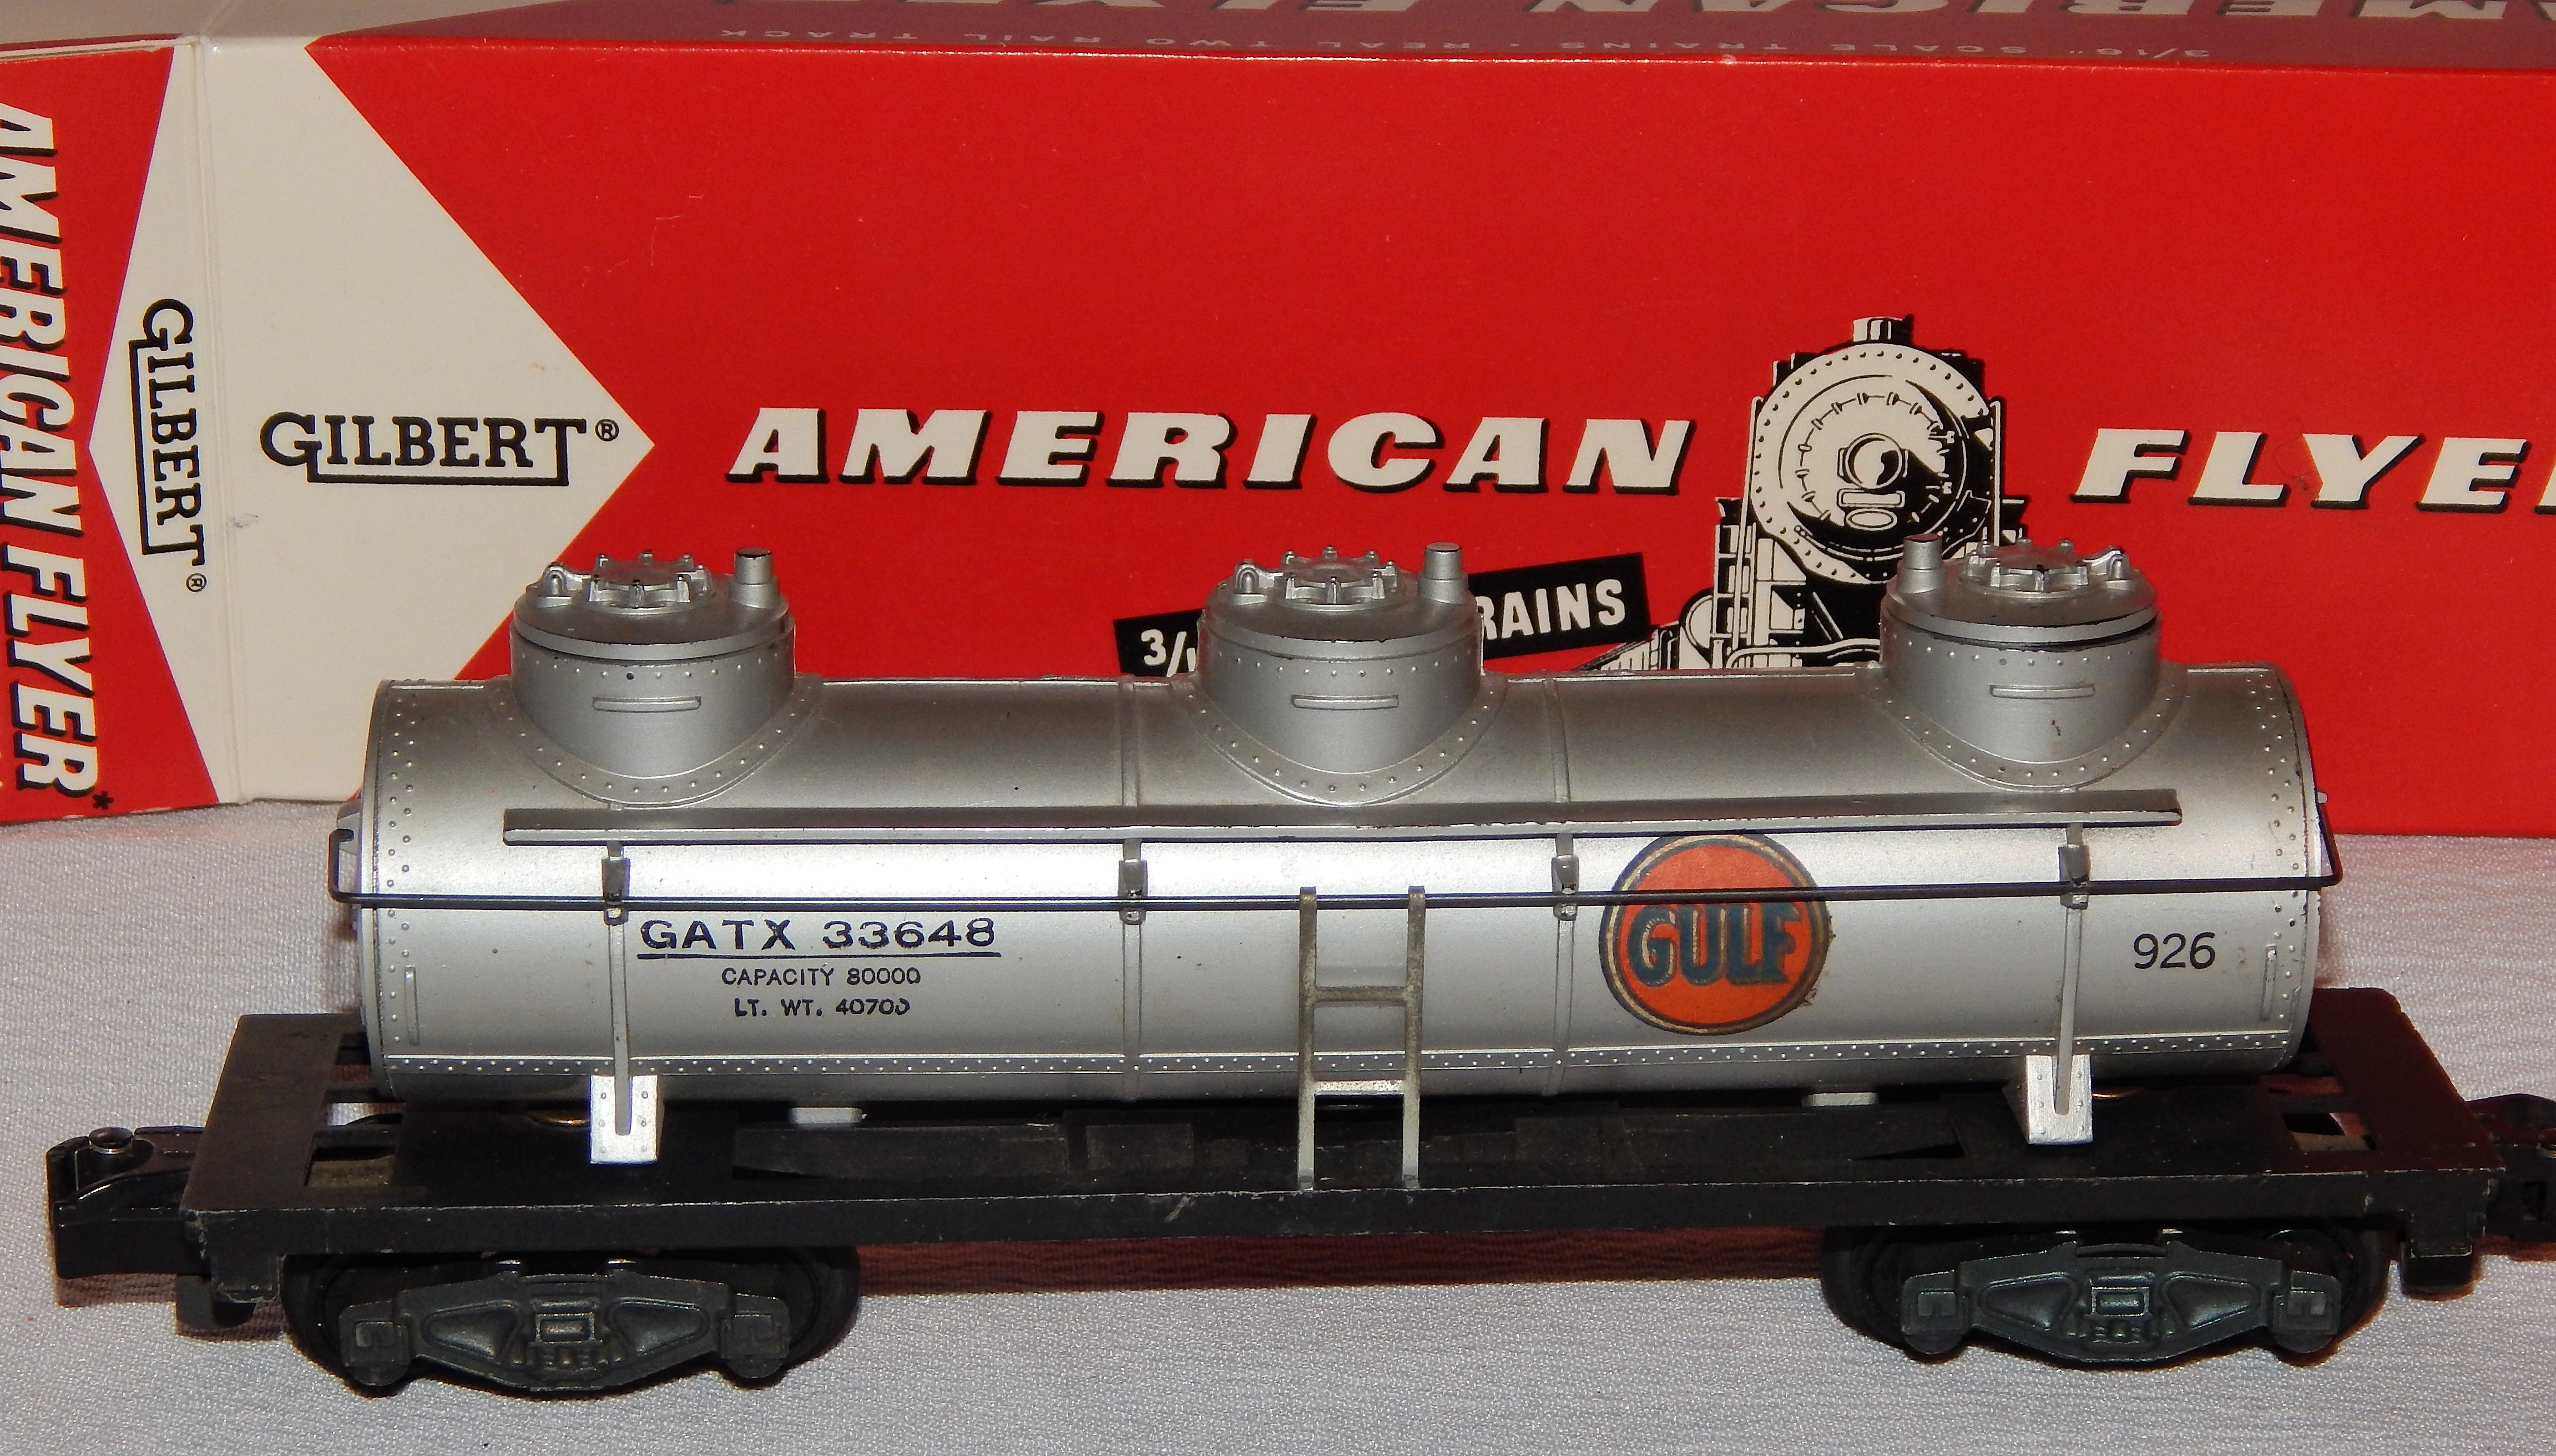 TANK CAR DOME RED AMERICAN FLYER S Gauge Trains